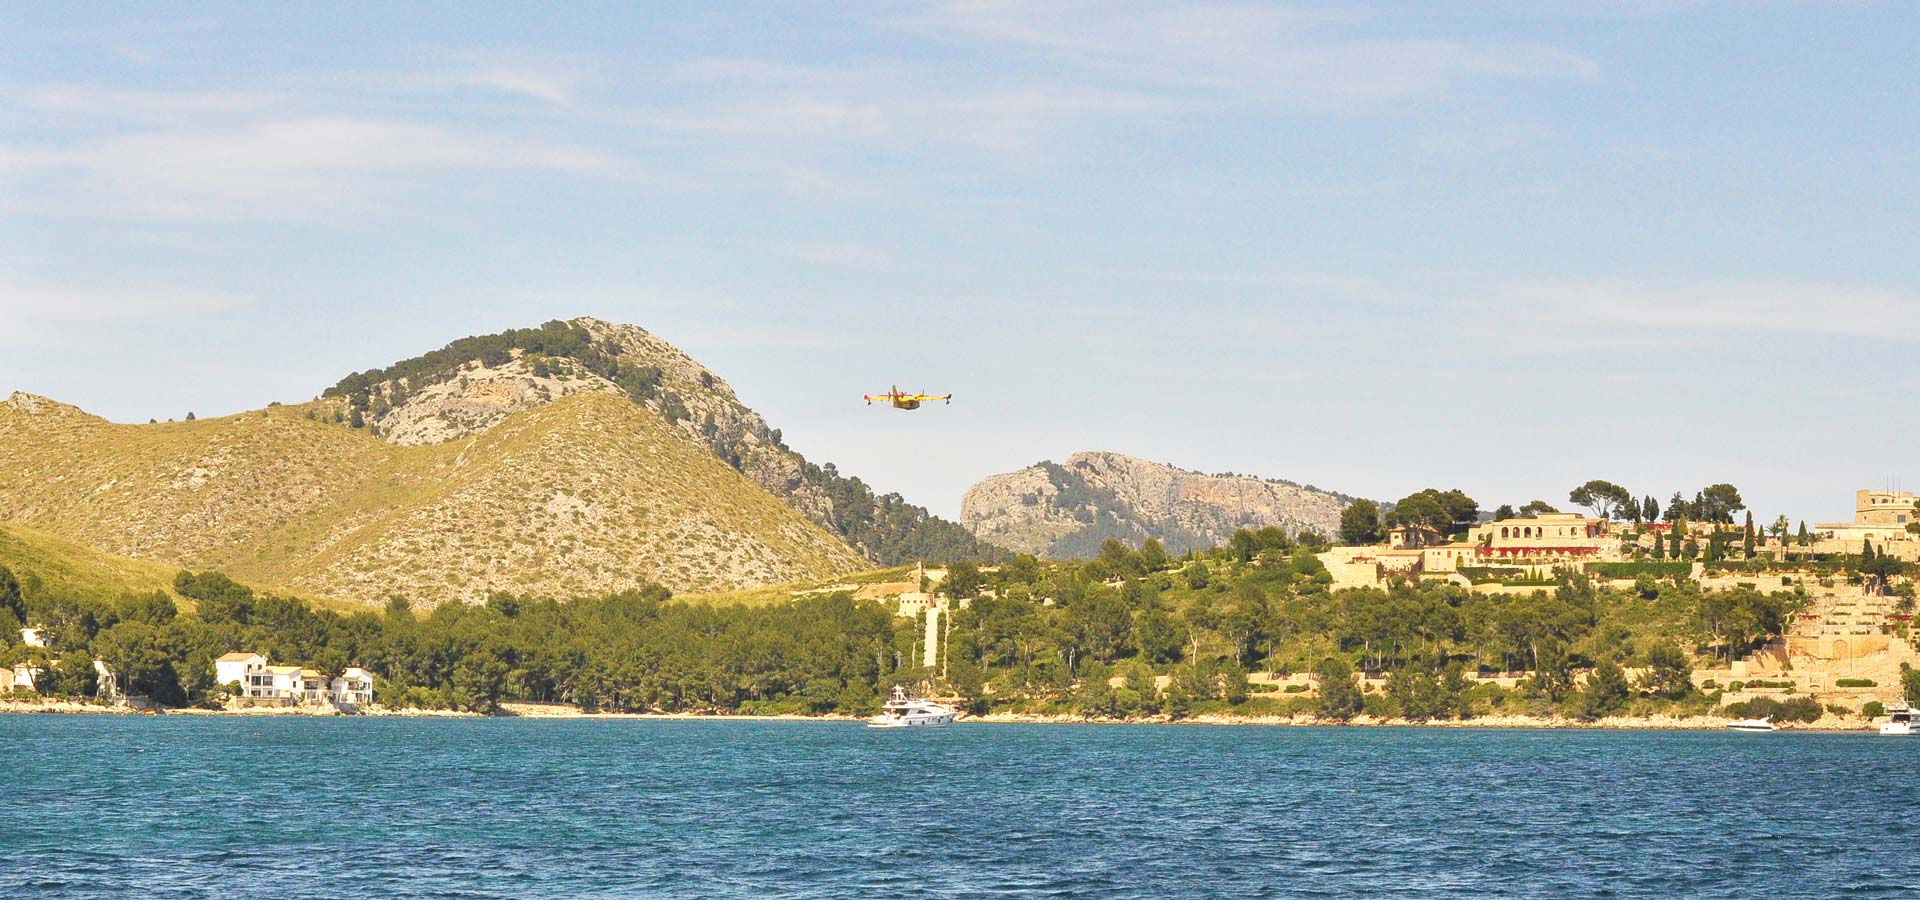 Puerto Pollensa property market surroundings.